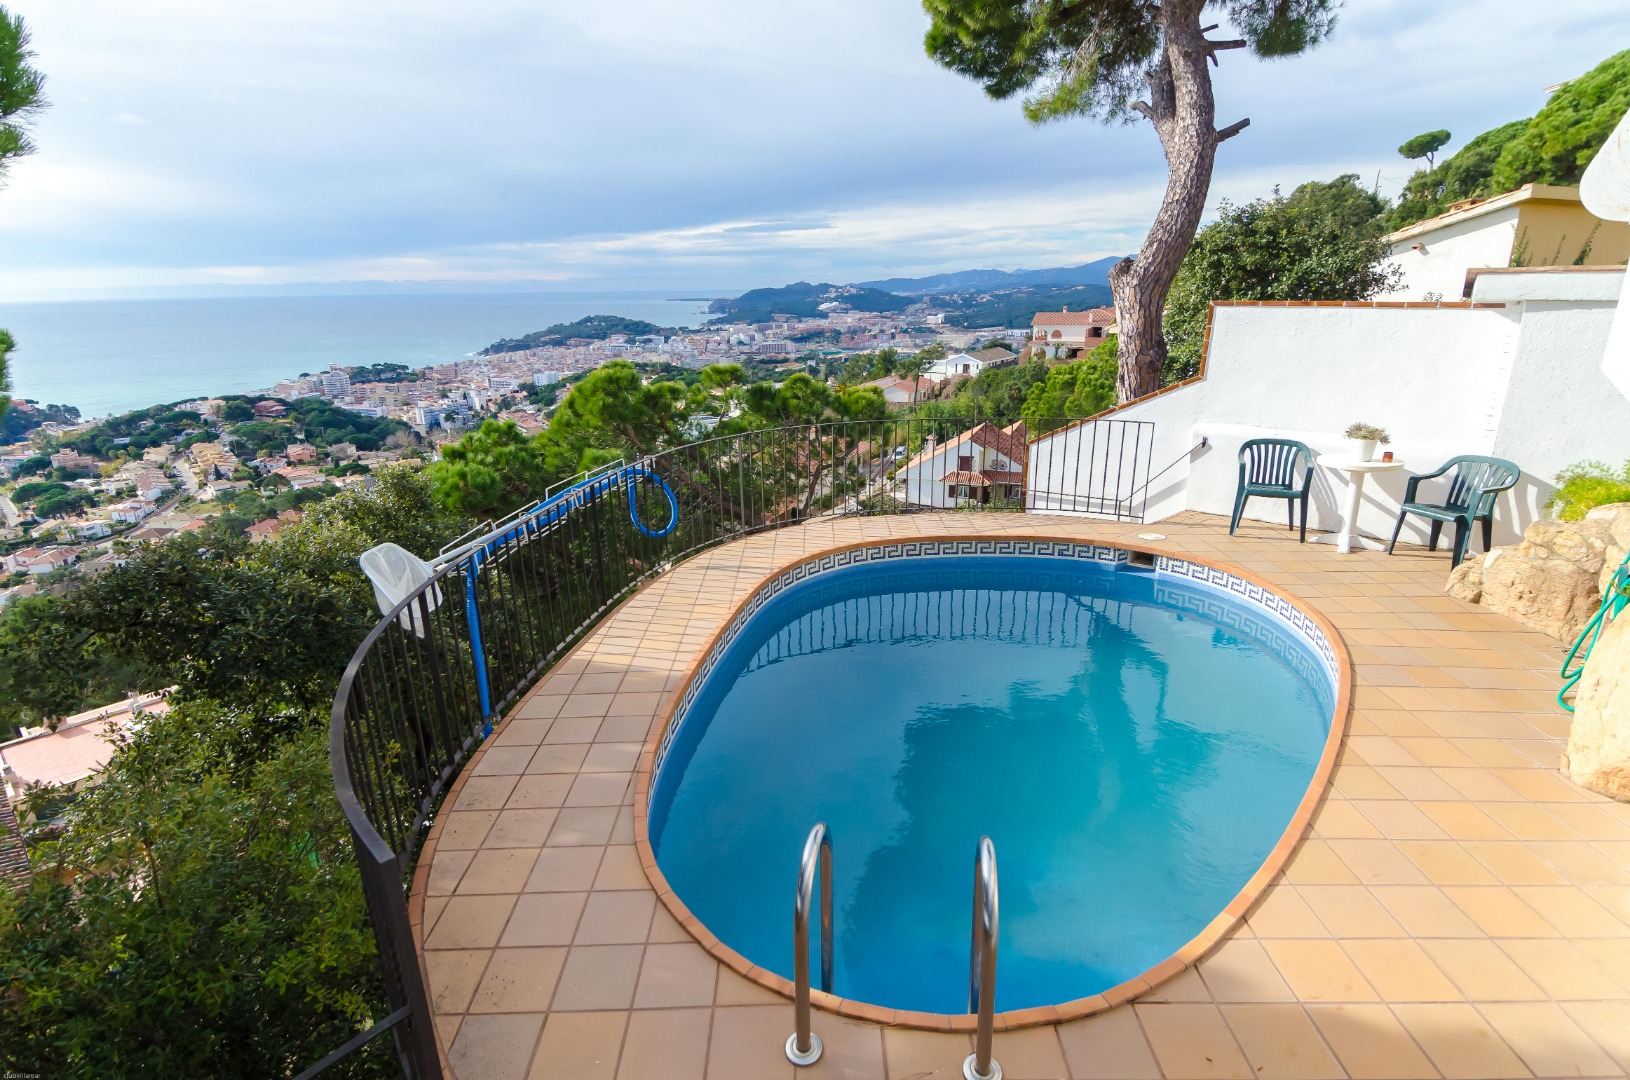 Villa Apartment Renata,Lloret de Mar,Costa Brava #2